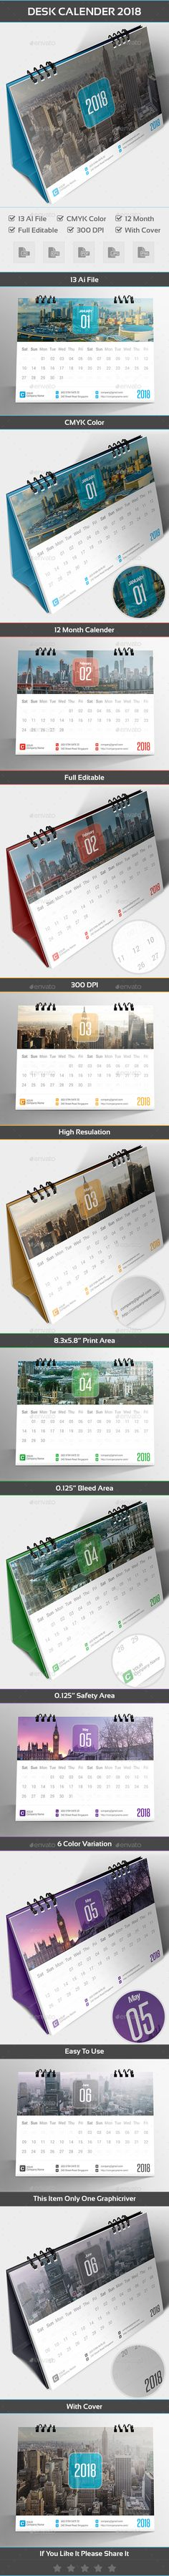 Desk Calender 2018 Template Vector EPS, AI Illustrator